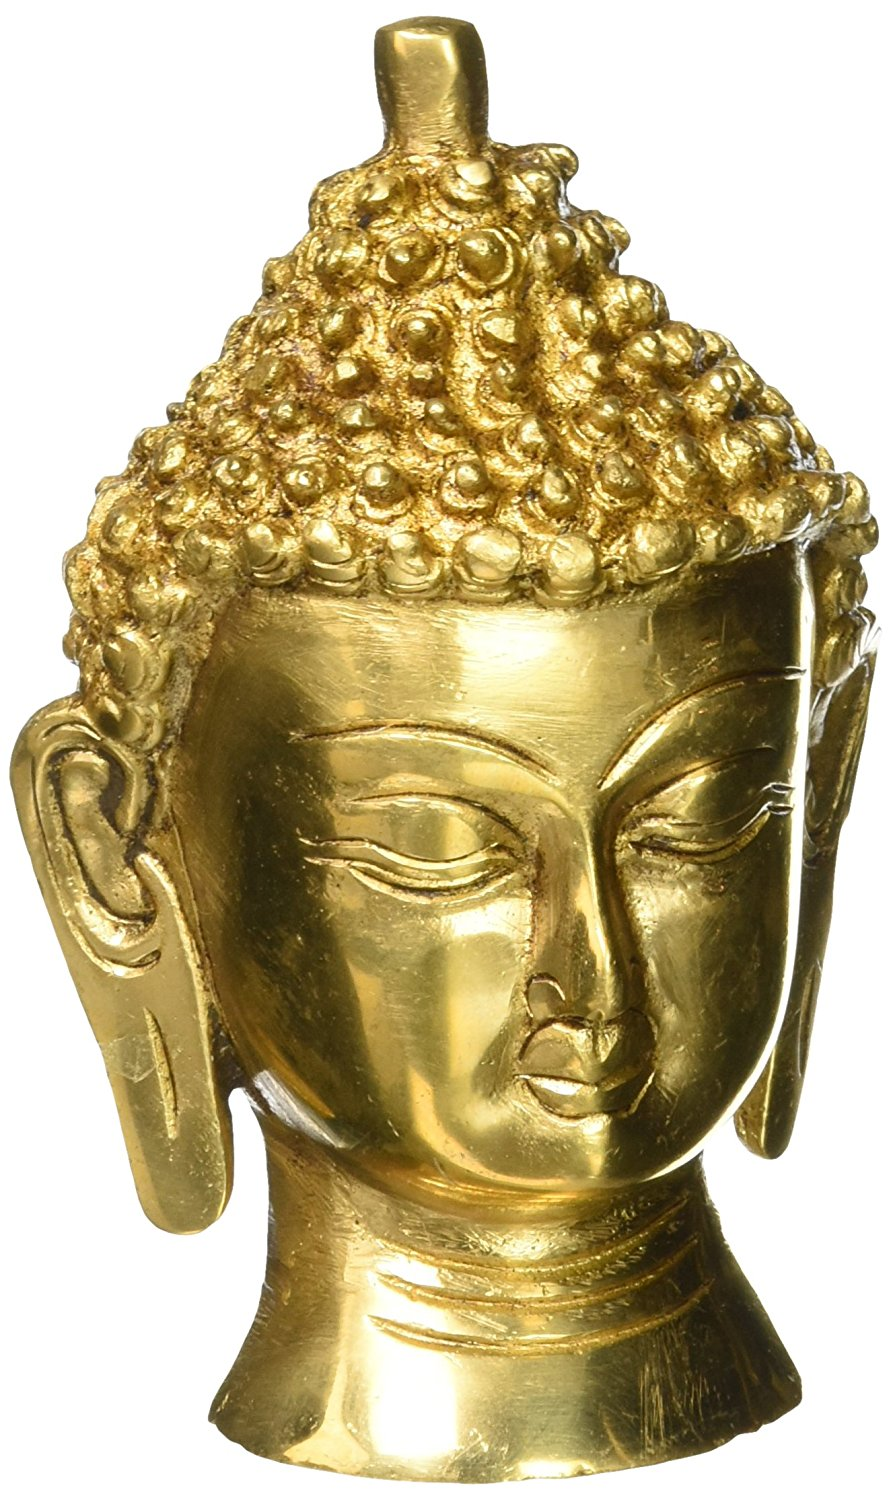 Buy Large Buddha Head Statue Wall Sculpture Art Decor Brass Metal ...